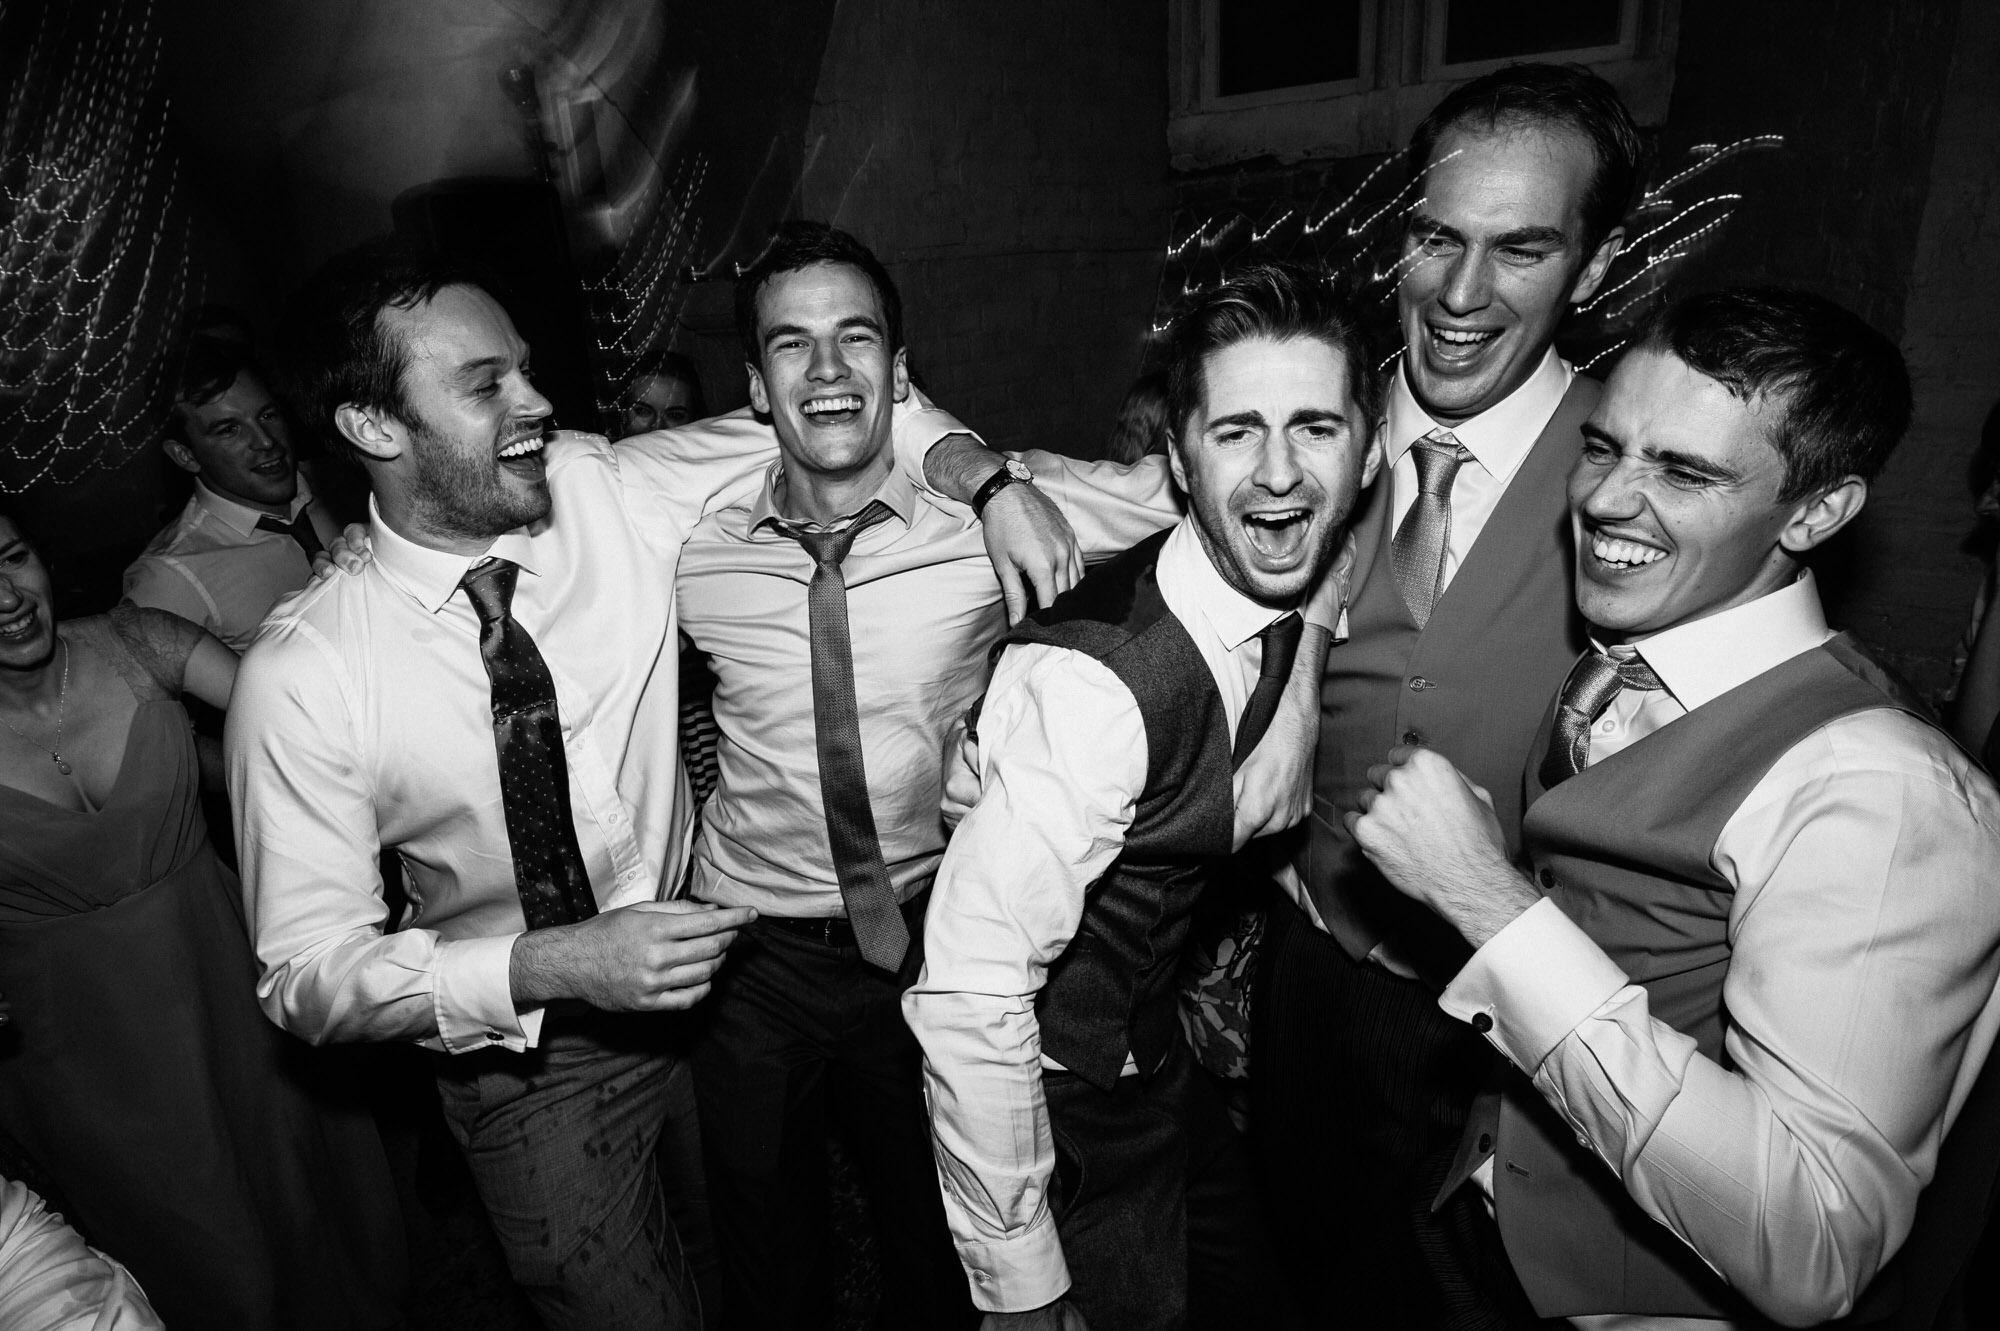 Dance at Crowcombe court wedding